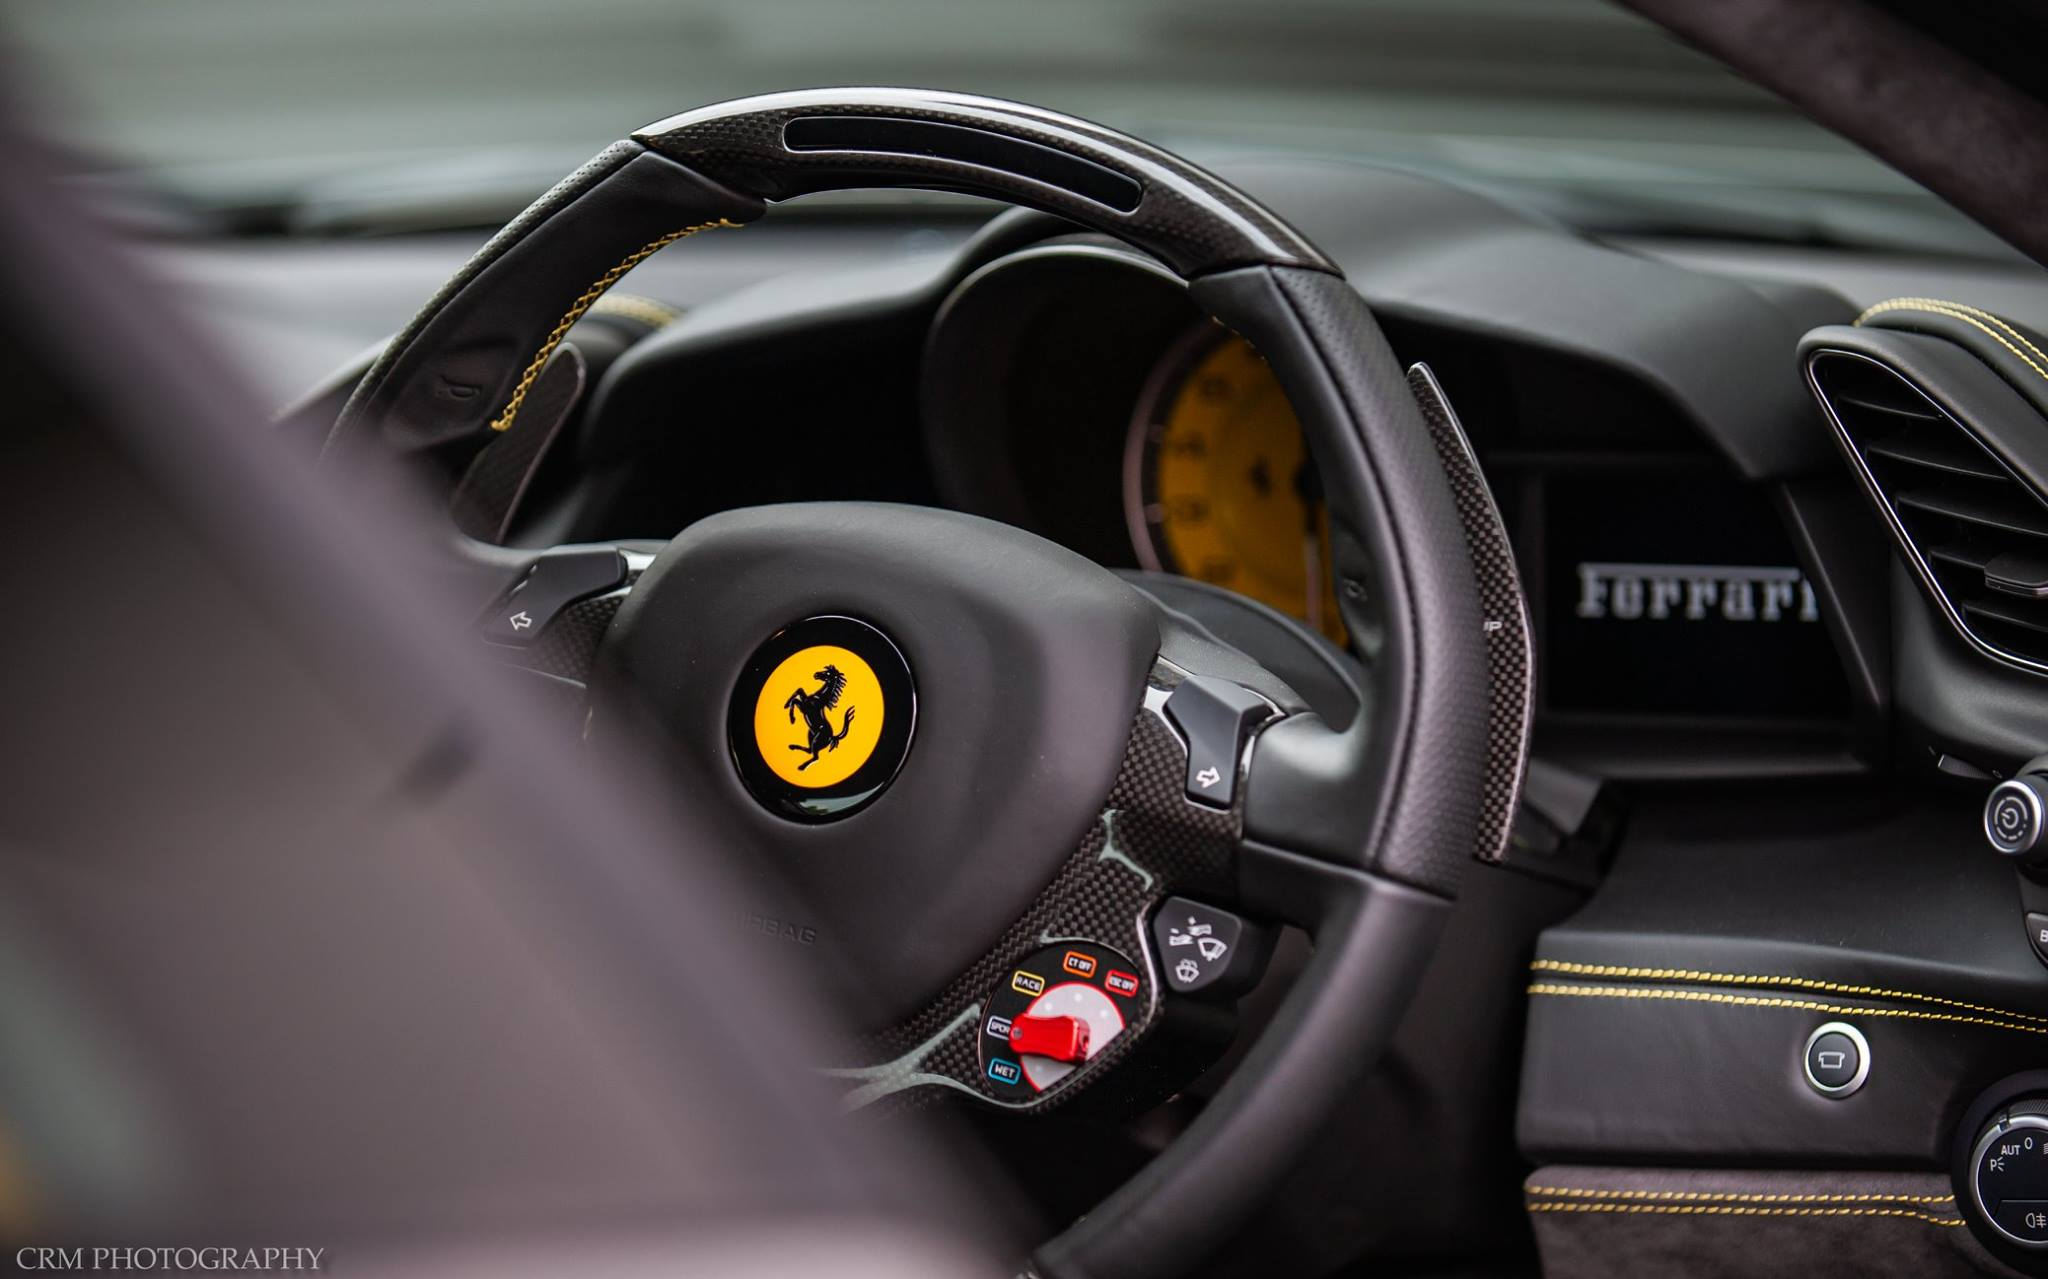 Interior detail - Our interior clean service ensures the interior of your car is immaculate.All surfaces including glass, plastics, fabrics, leather and other sensitive areas will be cleaned thoroughly & vacuumed.